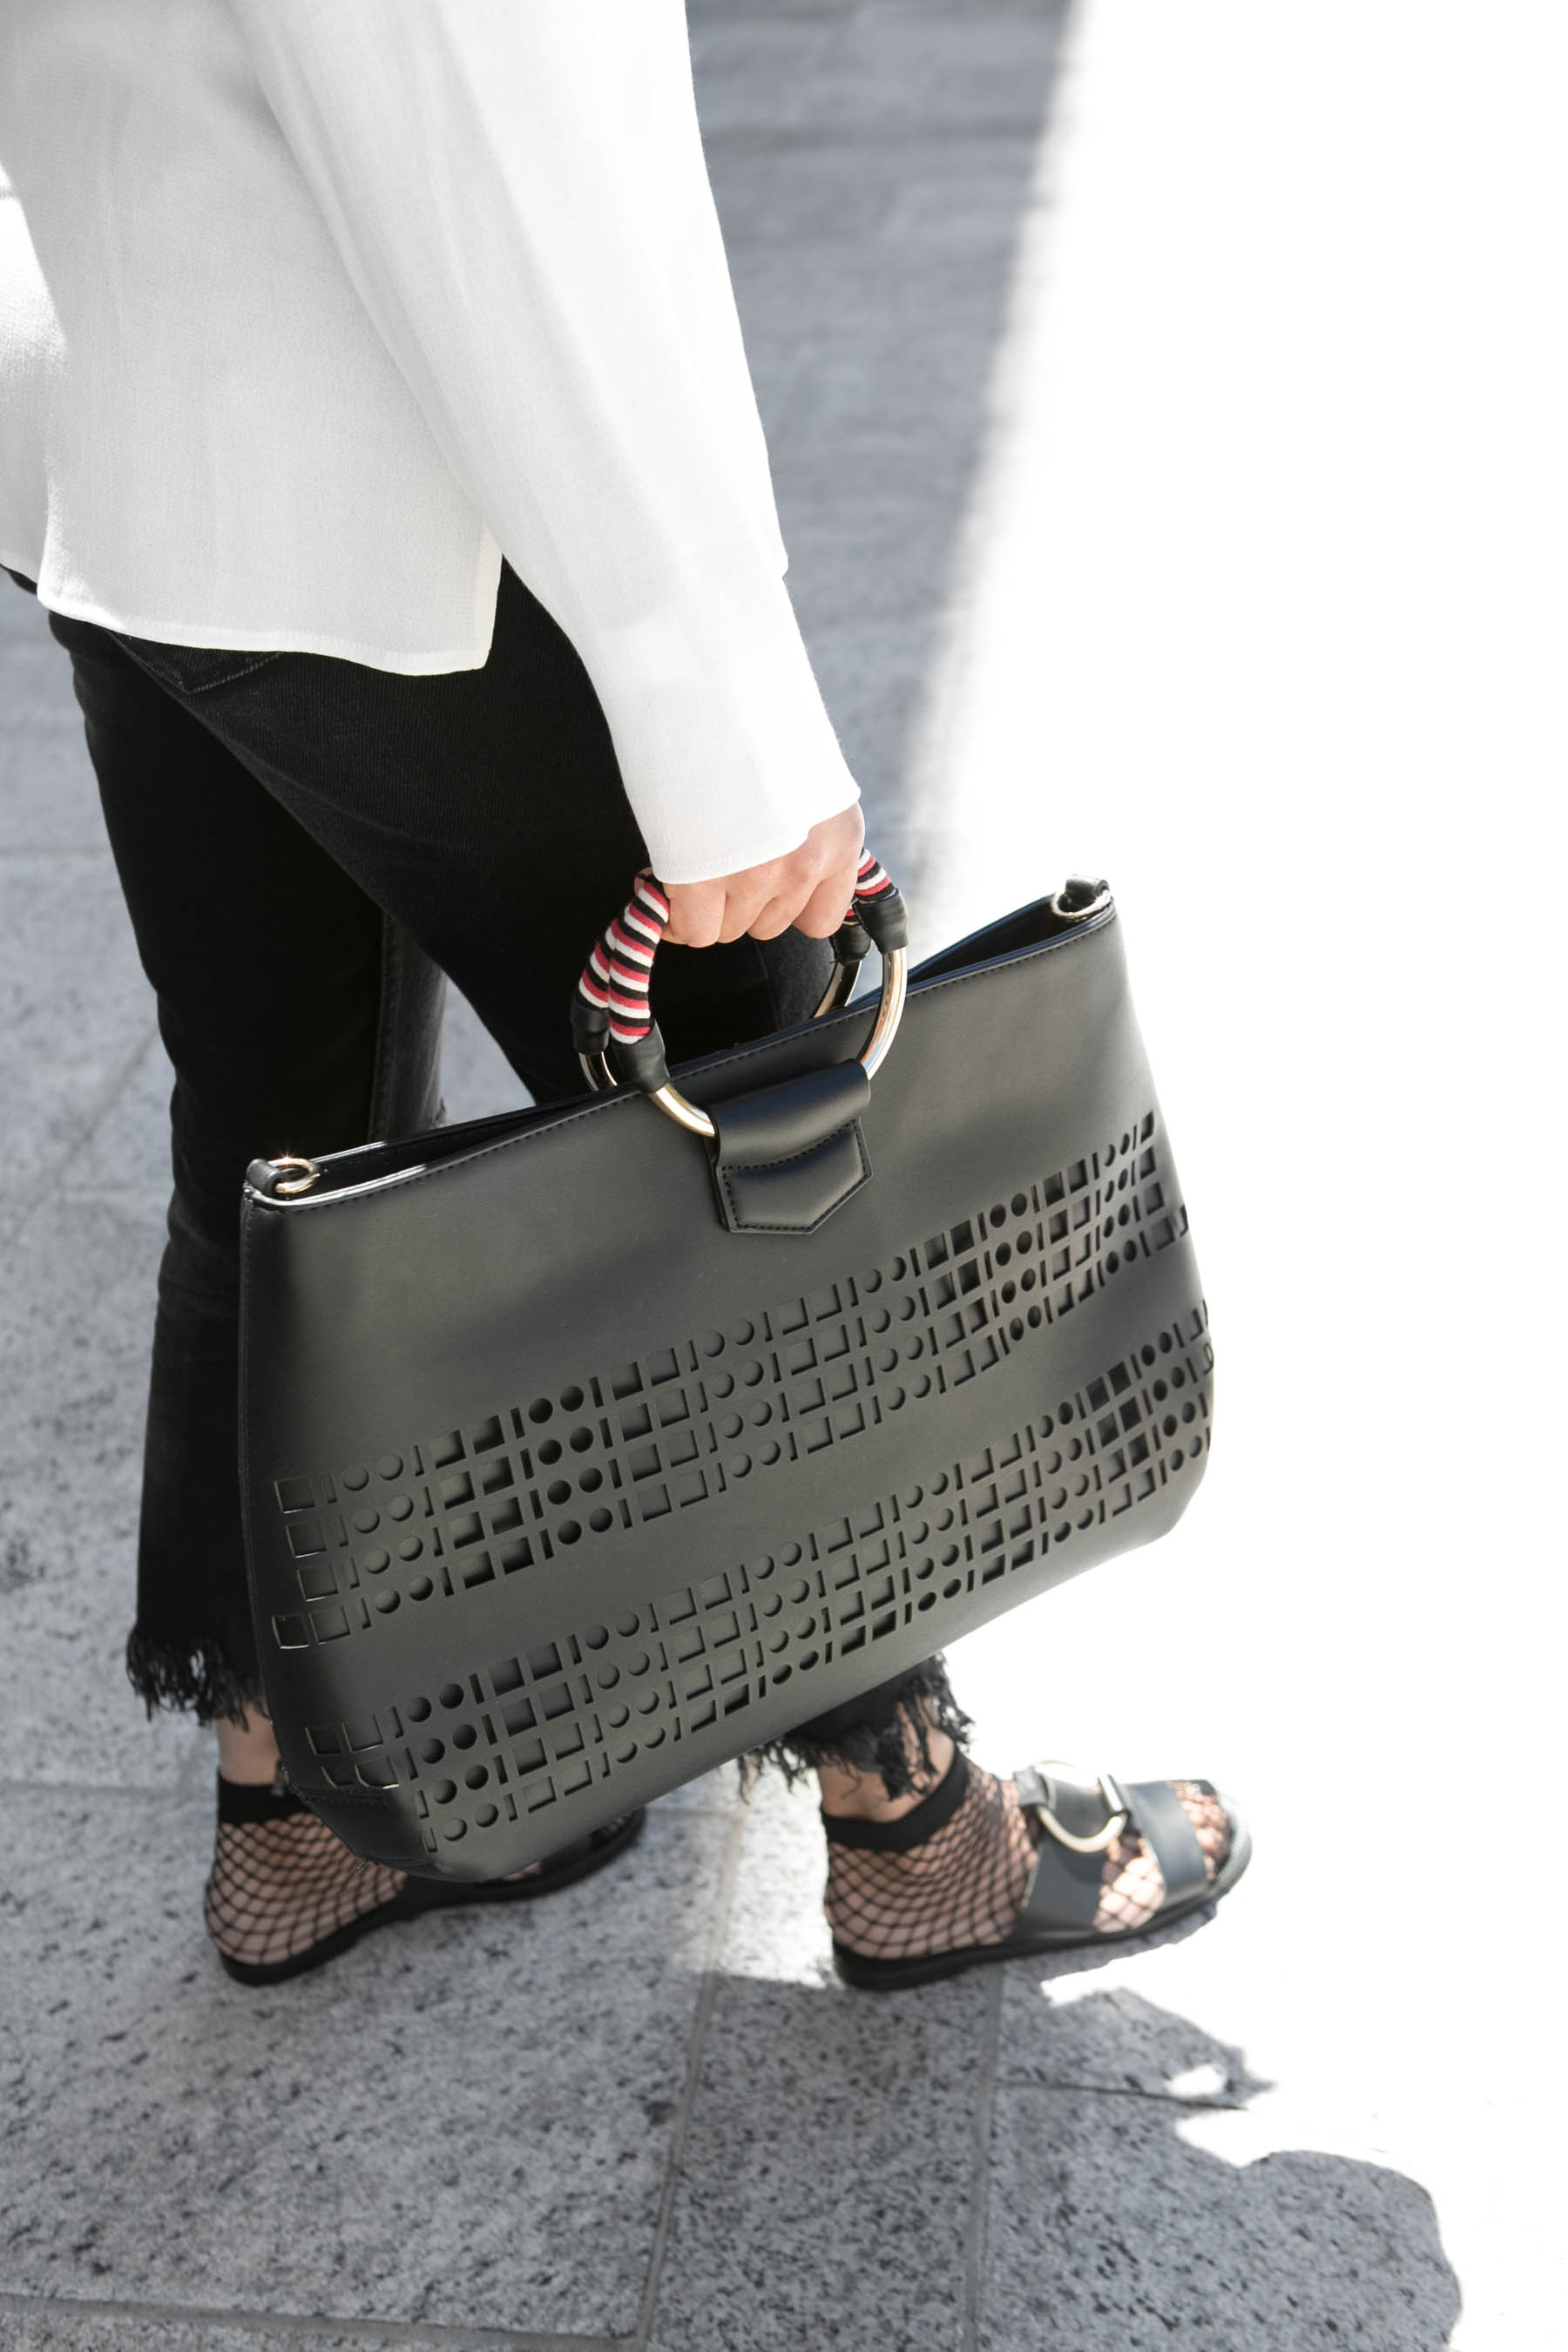 Mango bag and sandals with fishnet socks